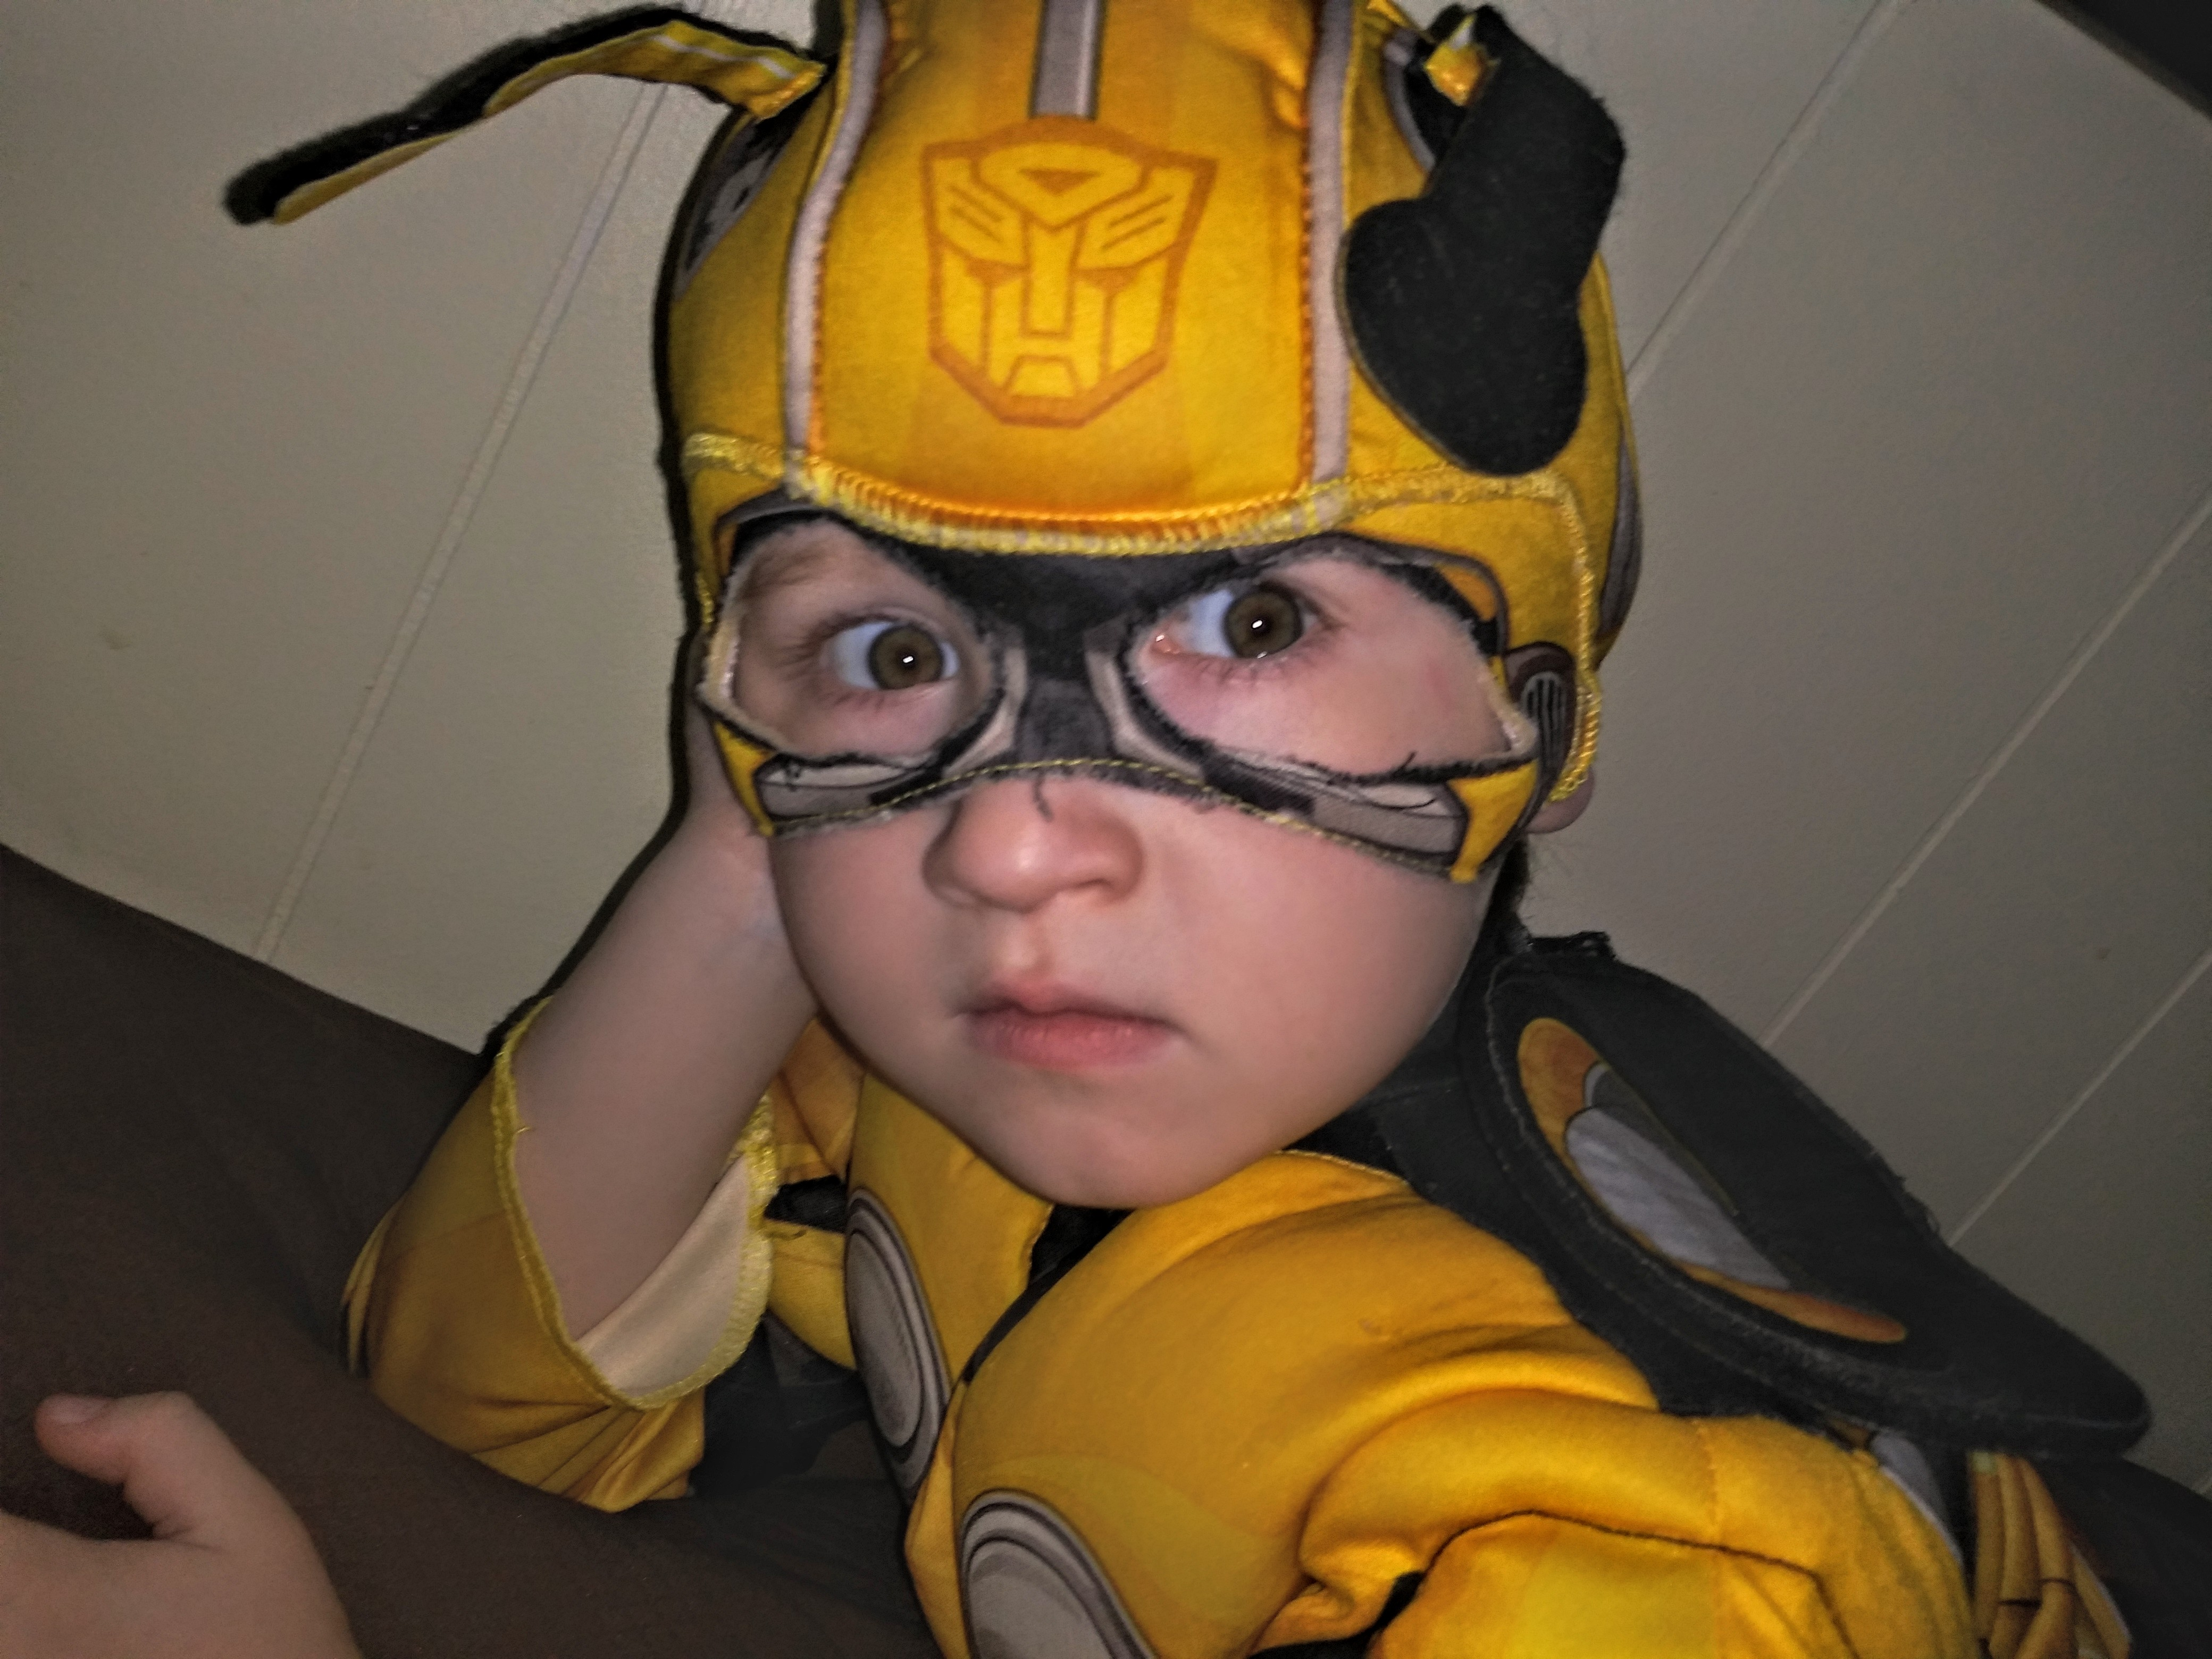 Little boy in Halloween costume, color photo